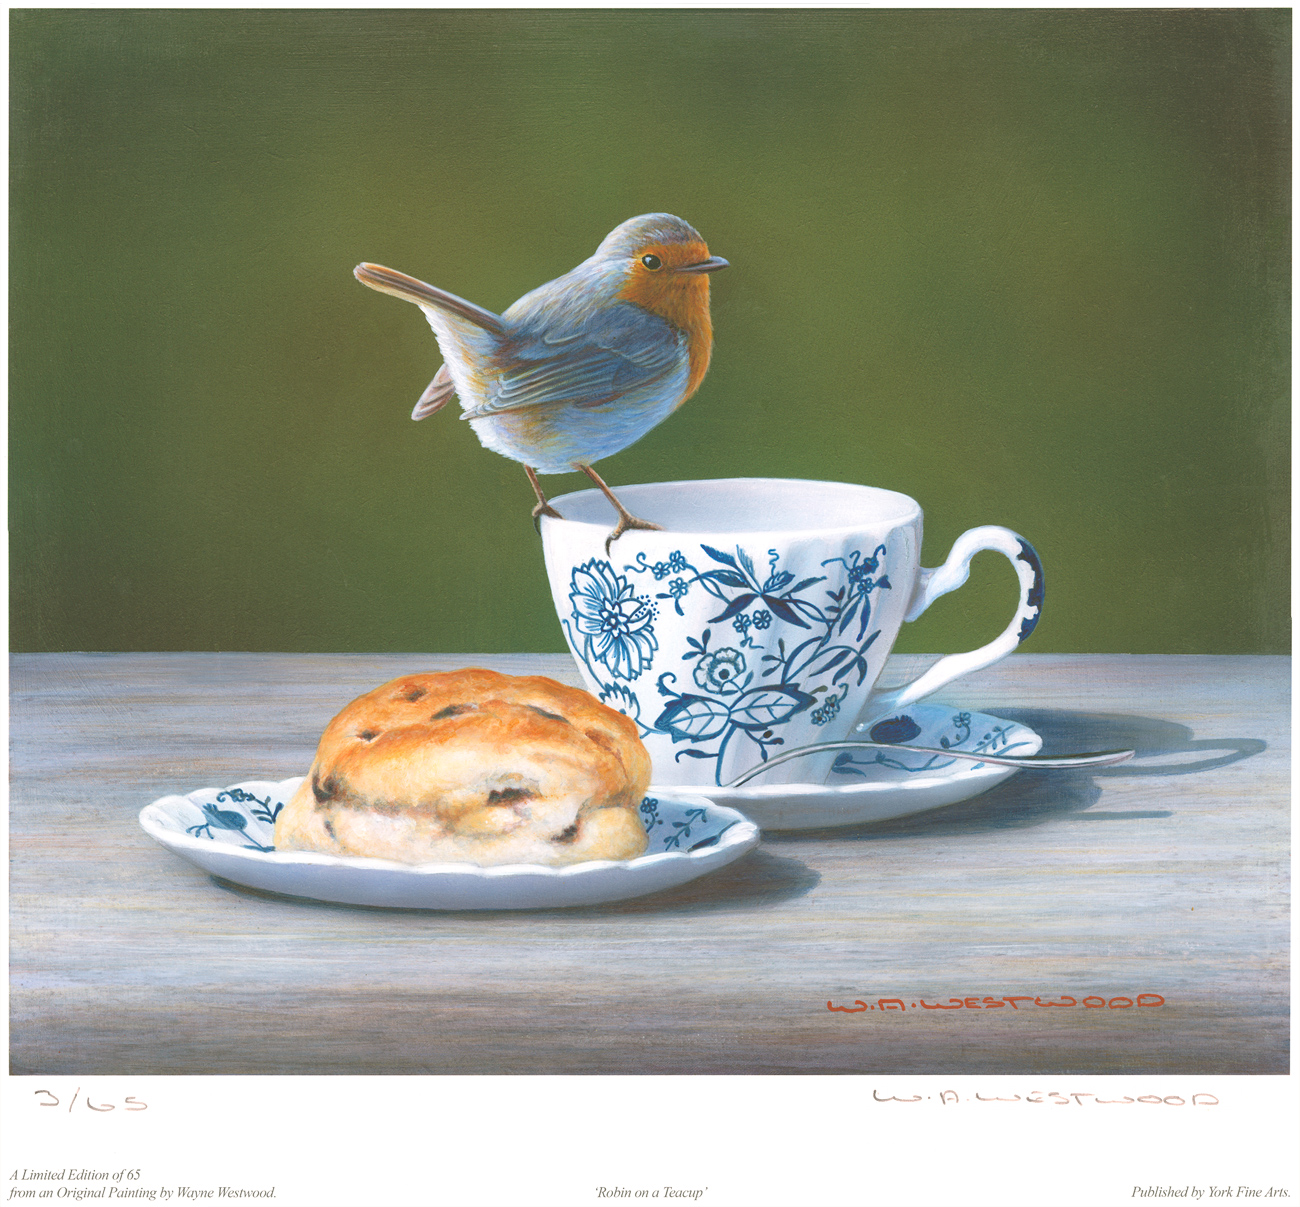 Wayne Westwood, Signed limited edition print, Robin on a Teacup Click to enlarge